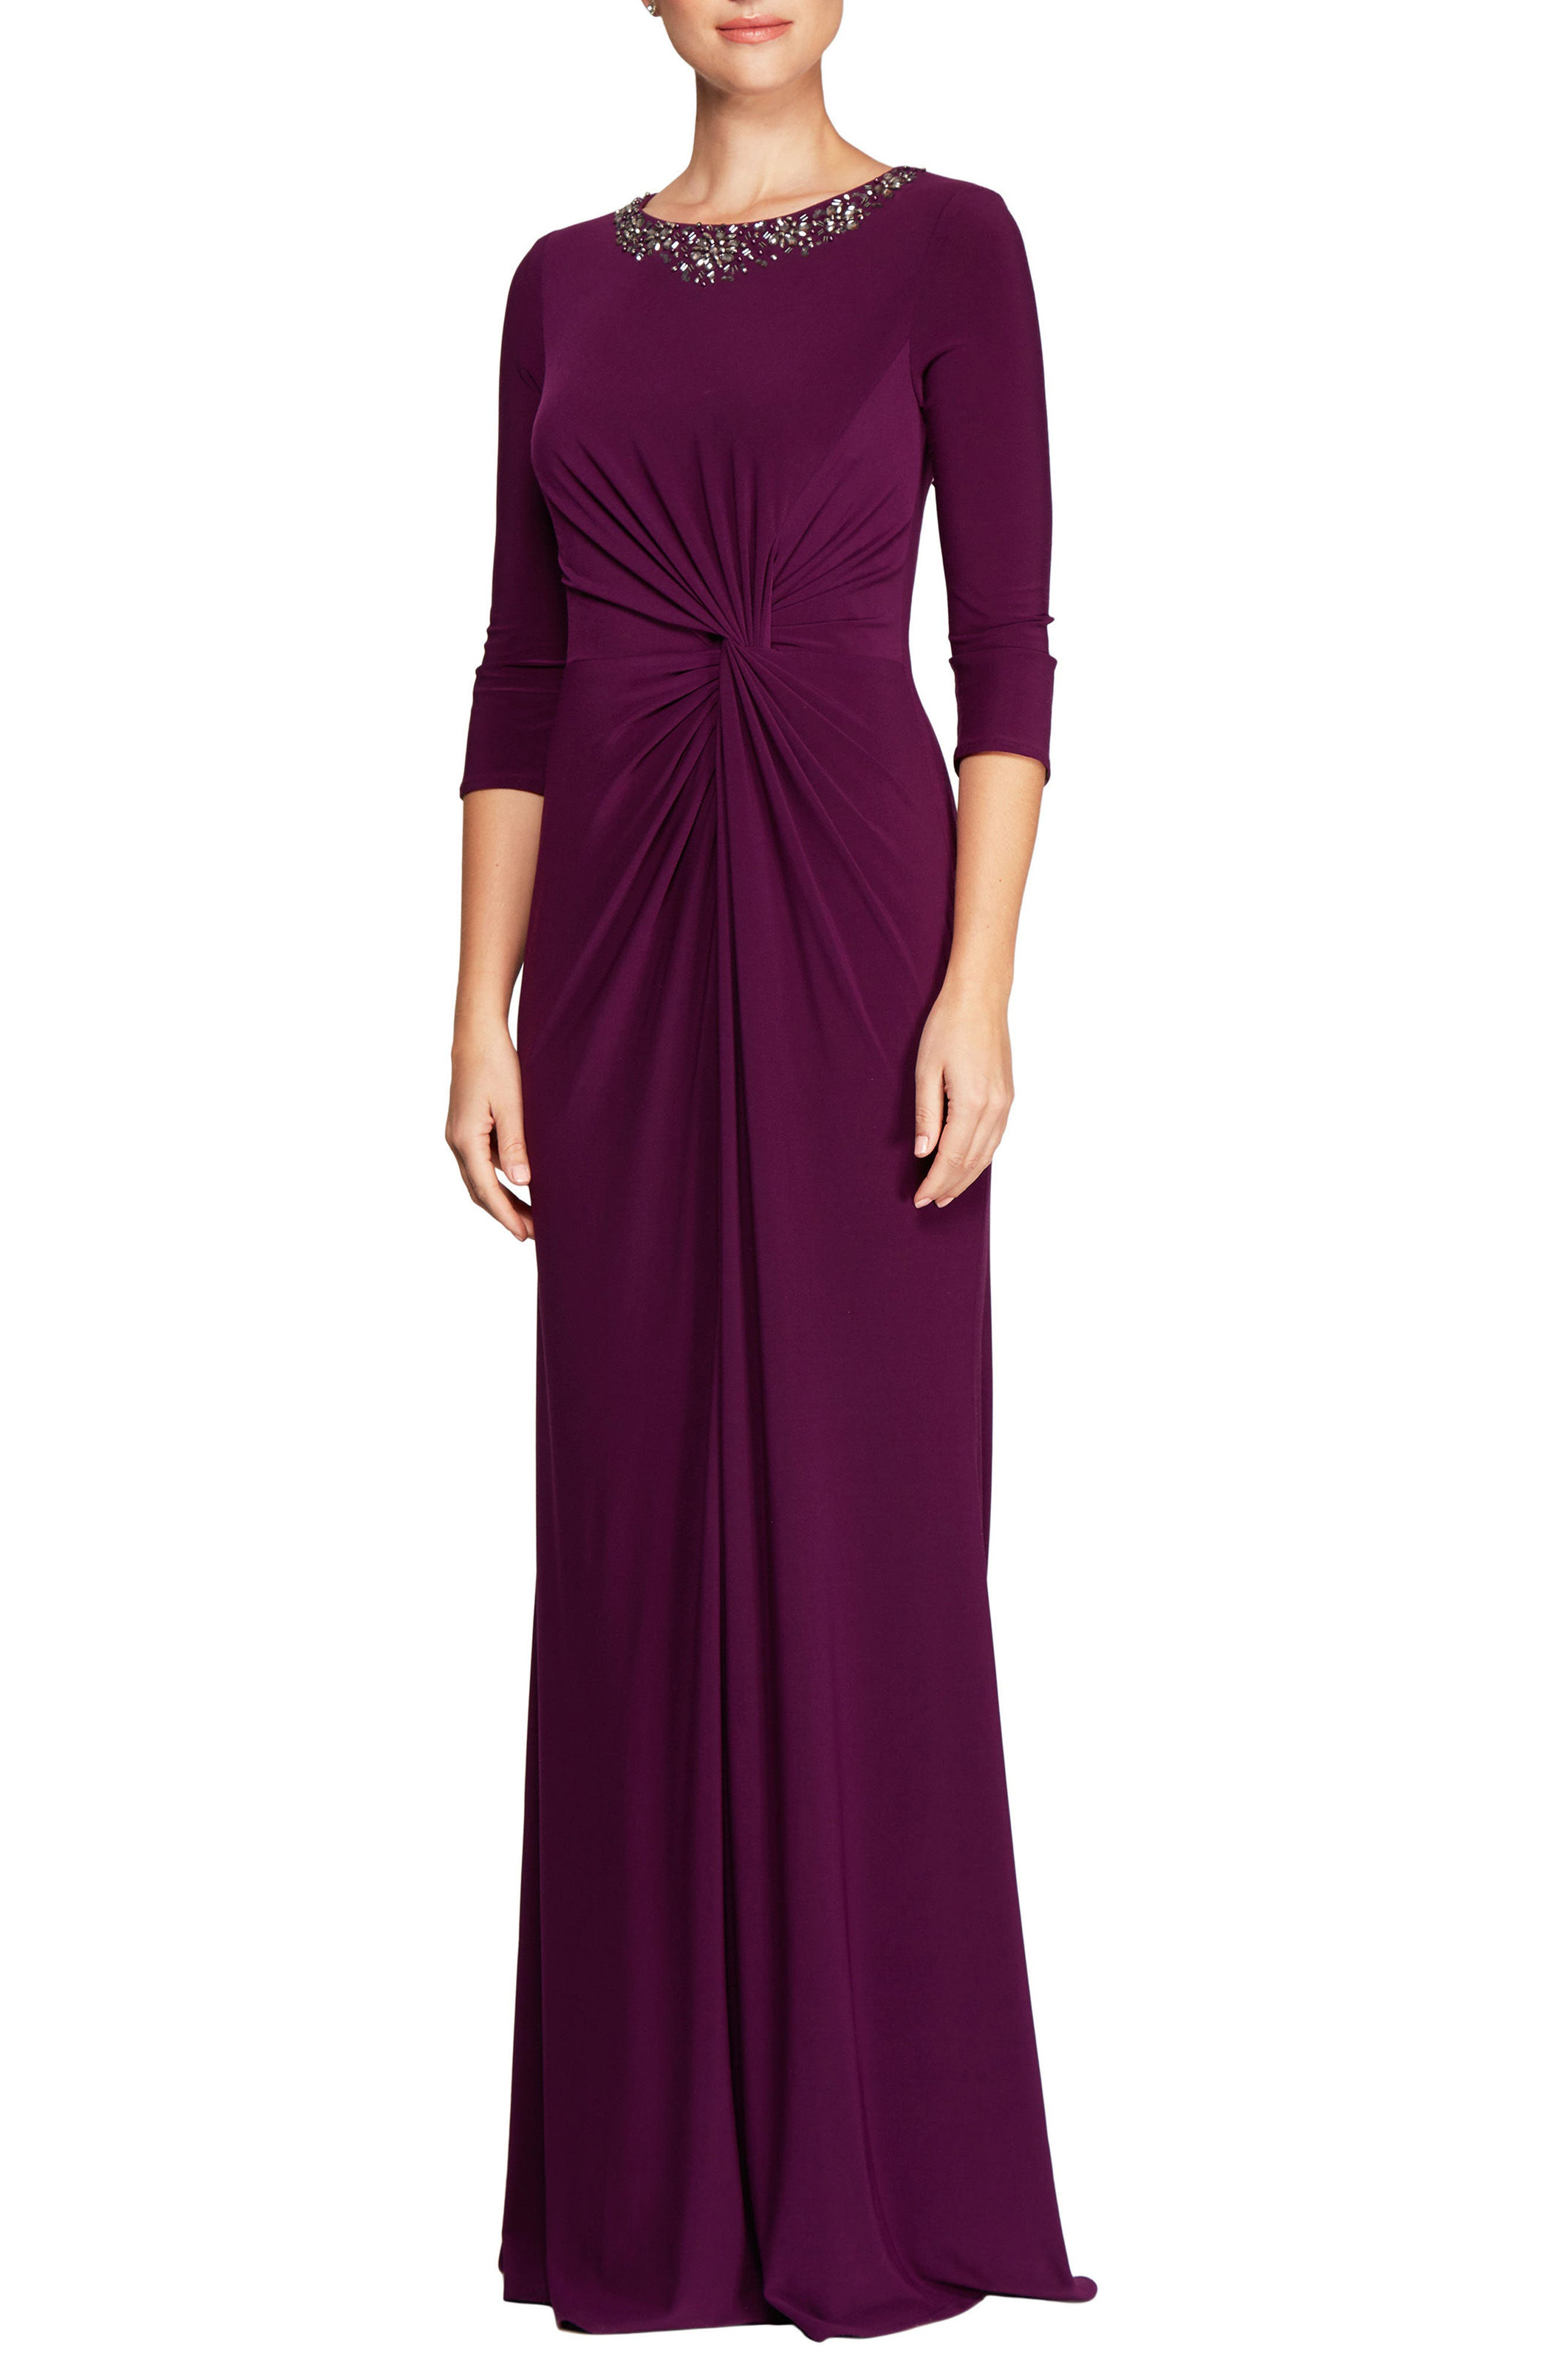 Main Image - Alex Evenings Knotted A-Line Gown